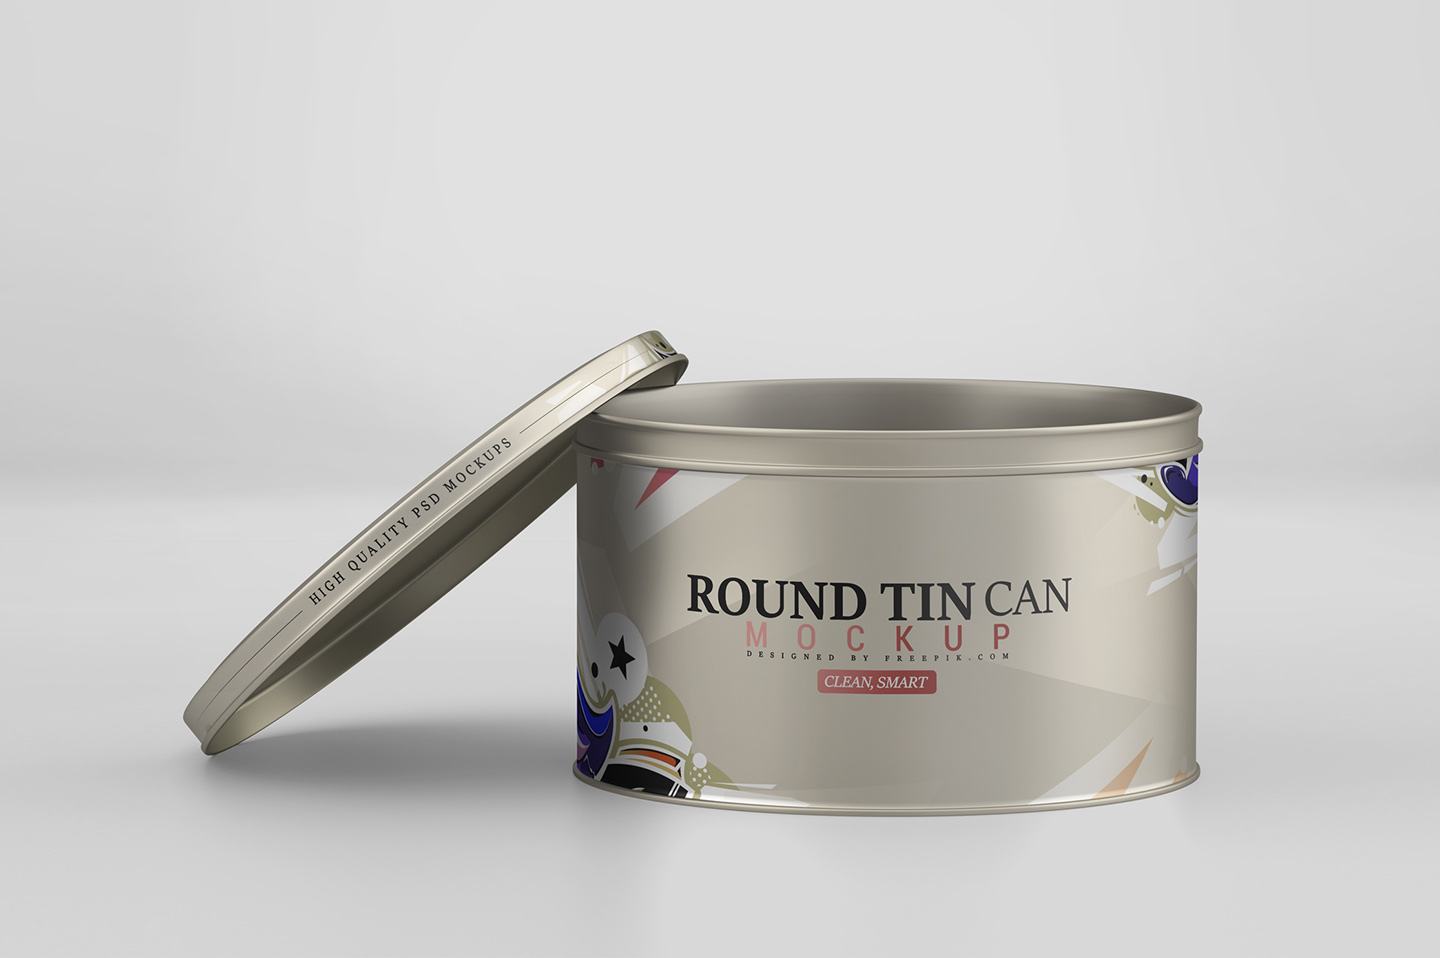 Round Tin Can Mockup example image 9